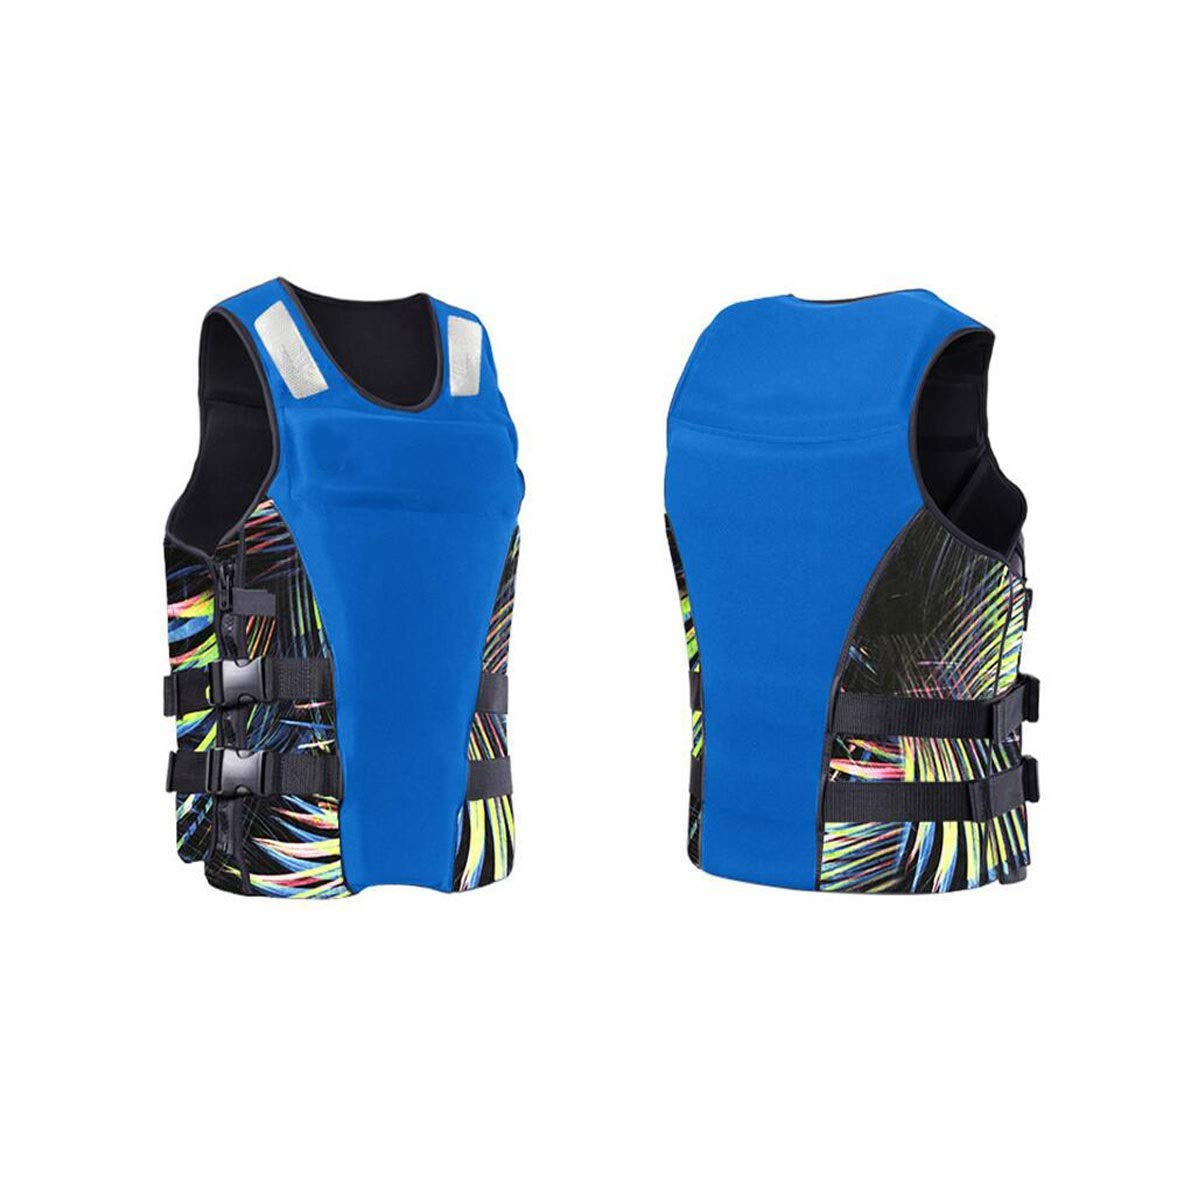 blueee XSmall Yougou Adult Inflatable Swimming Vest Life Jacket for Snorkeling, Outdoor Play, Surfing, Size  M, S, XS, color  Black, blueee, Red Health